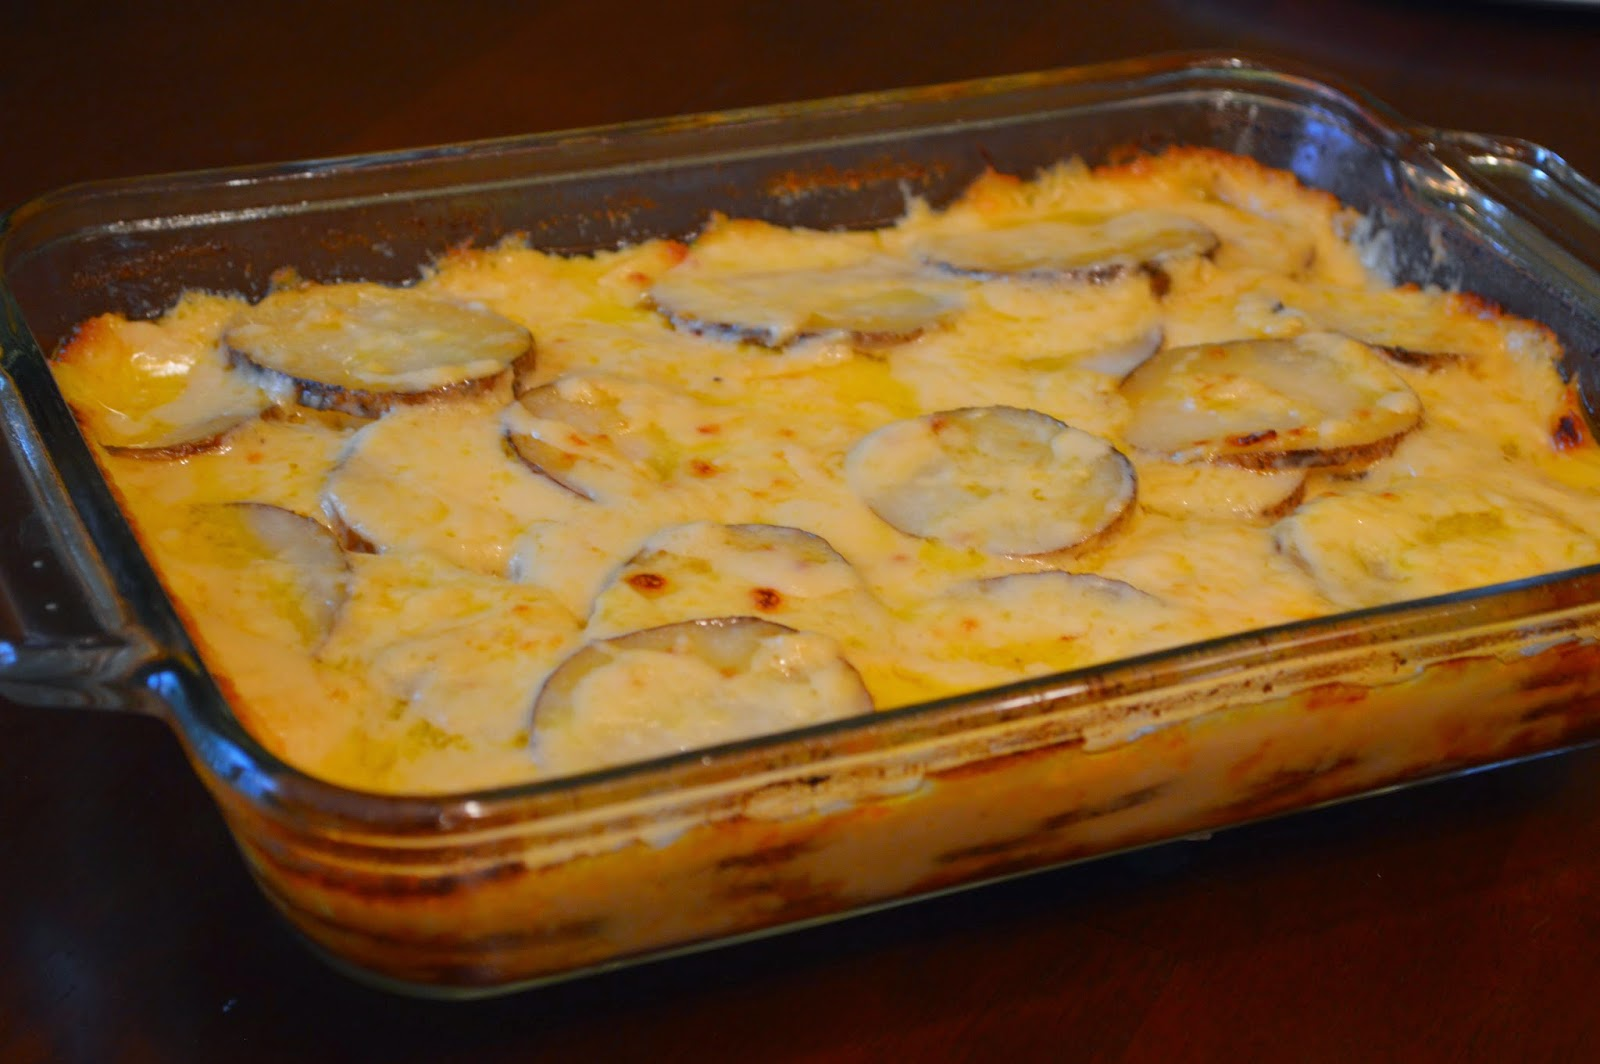 ... Day At A Time - From My Kitchen To Yours: Creamy Au Gratin Potatoes